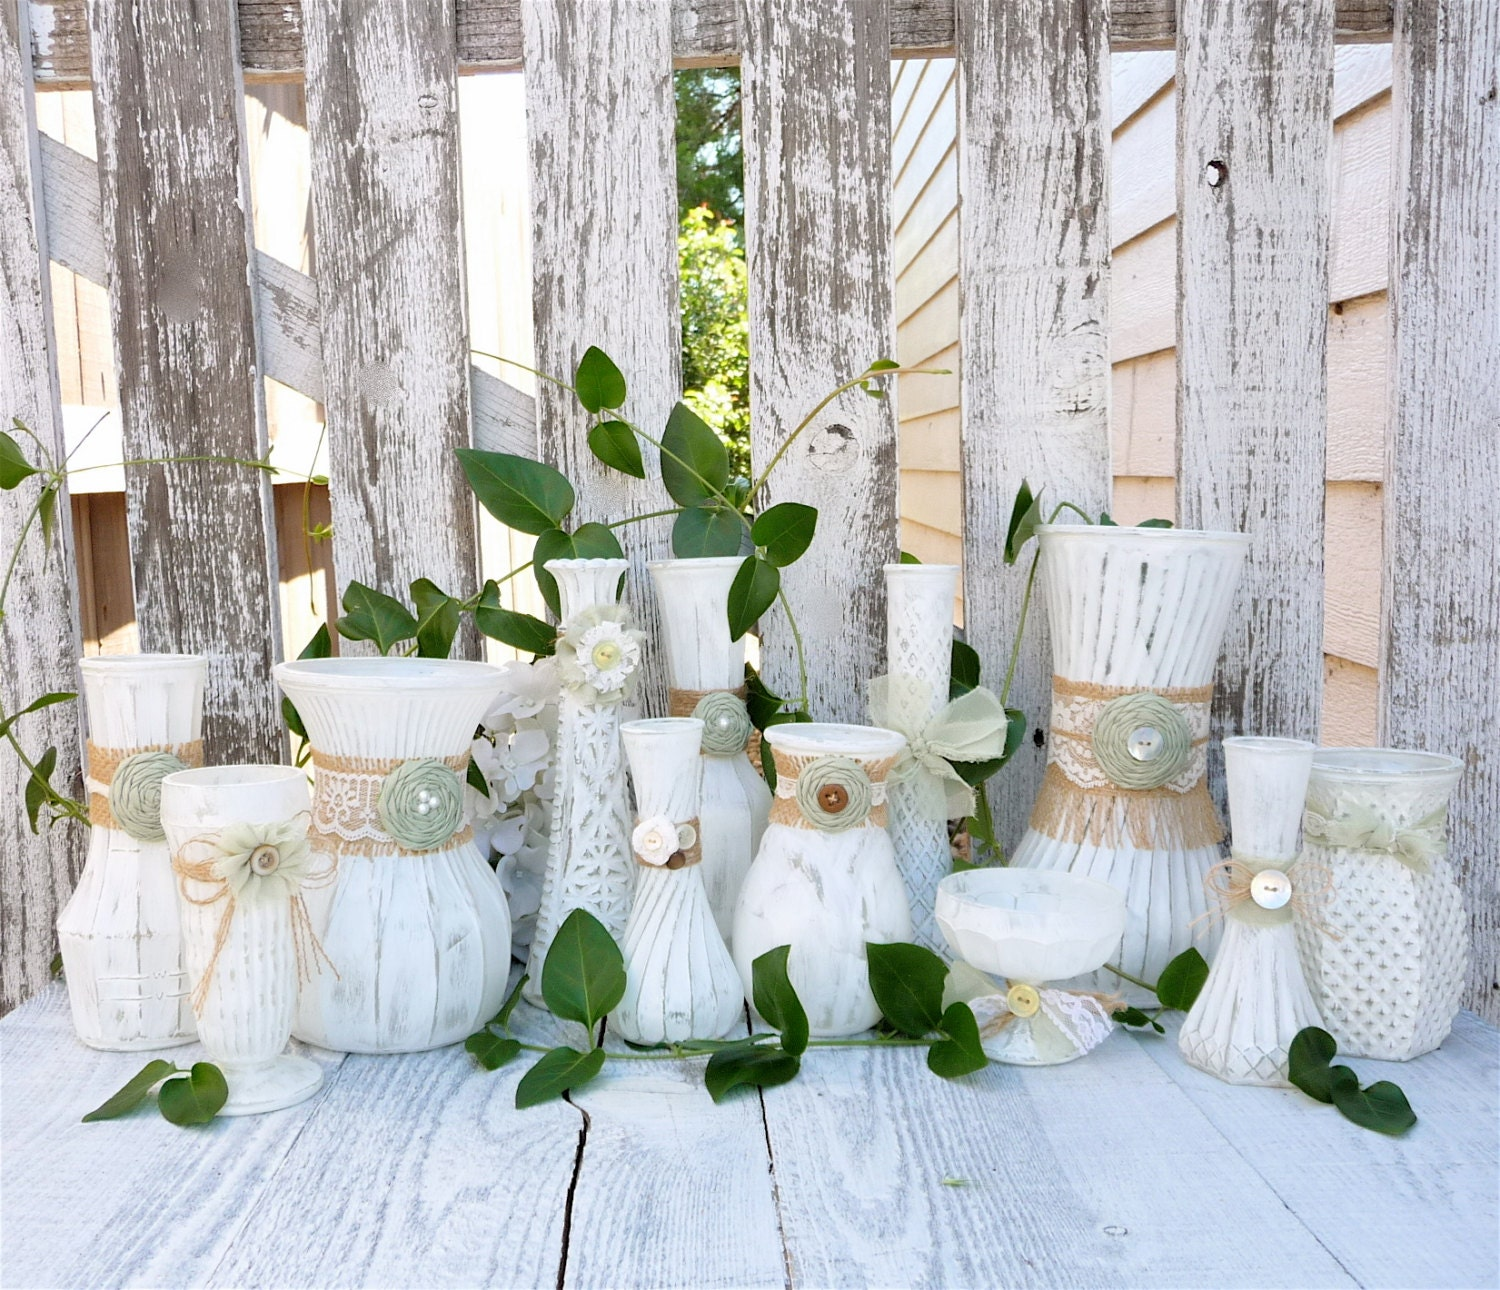 Popular items for wedding vases on Etsy